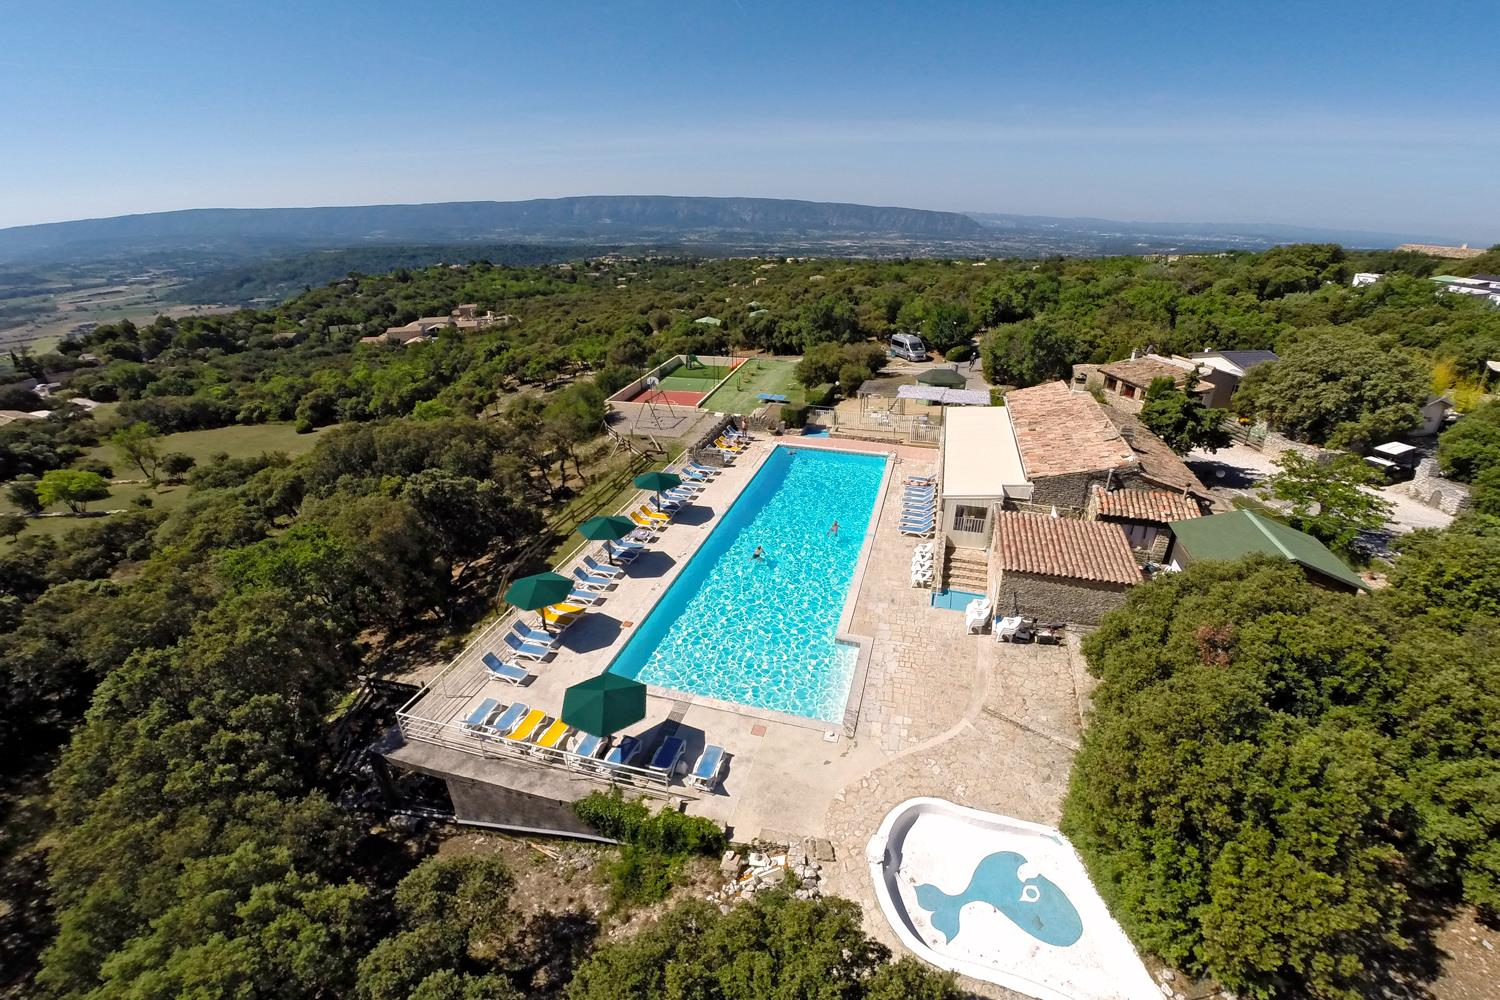 Establishment Domaine Du Camping Des Sources - Gordes